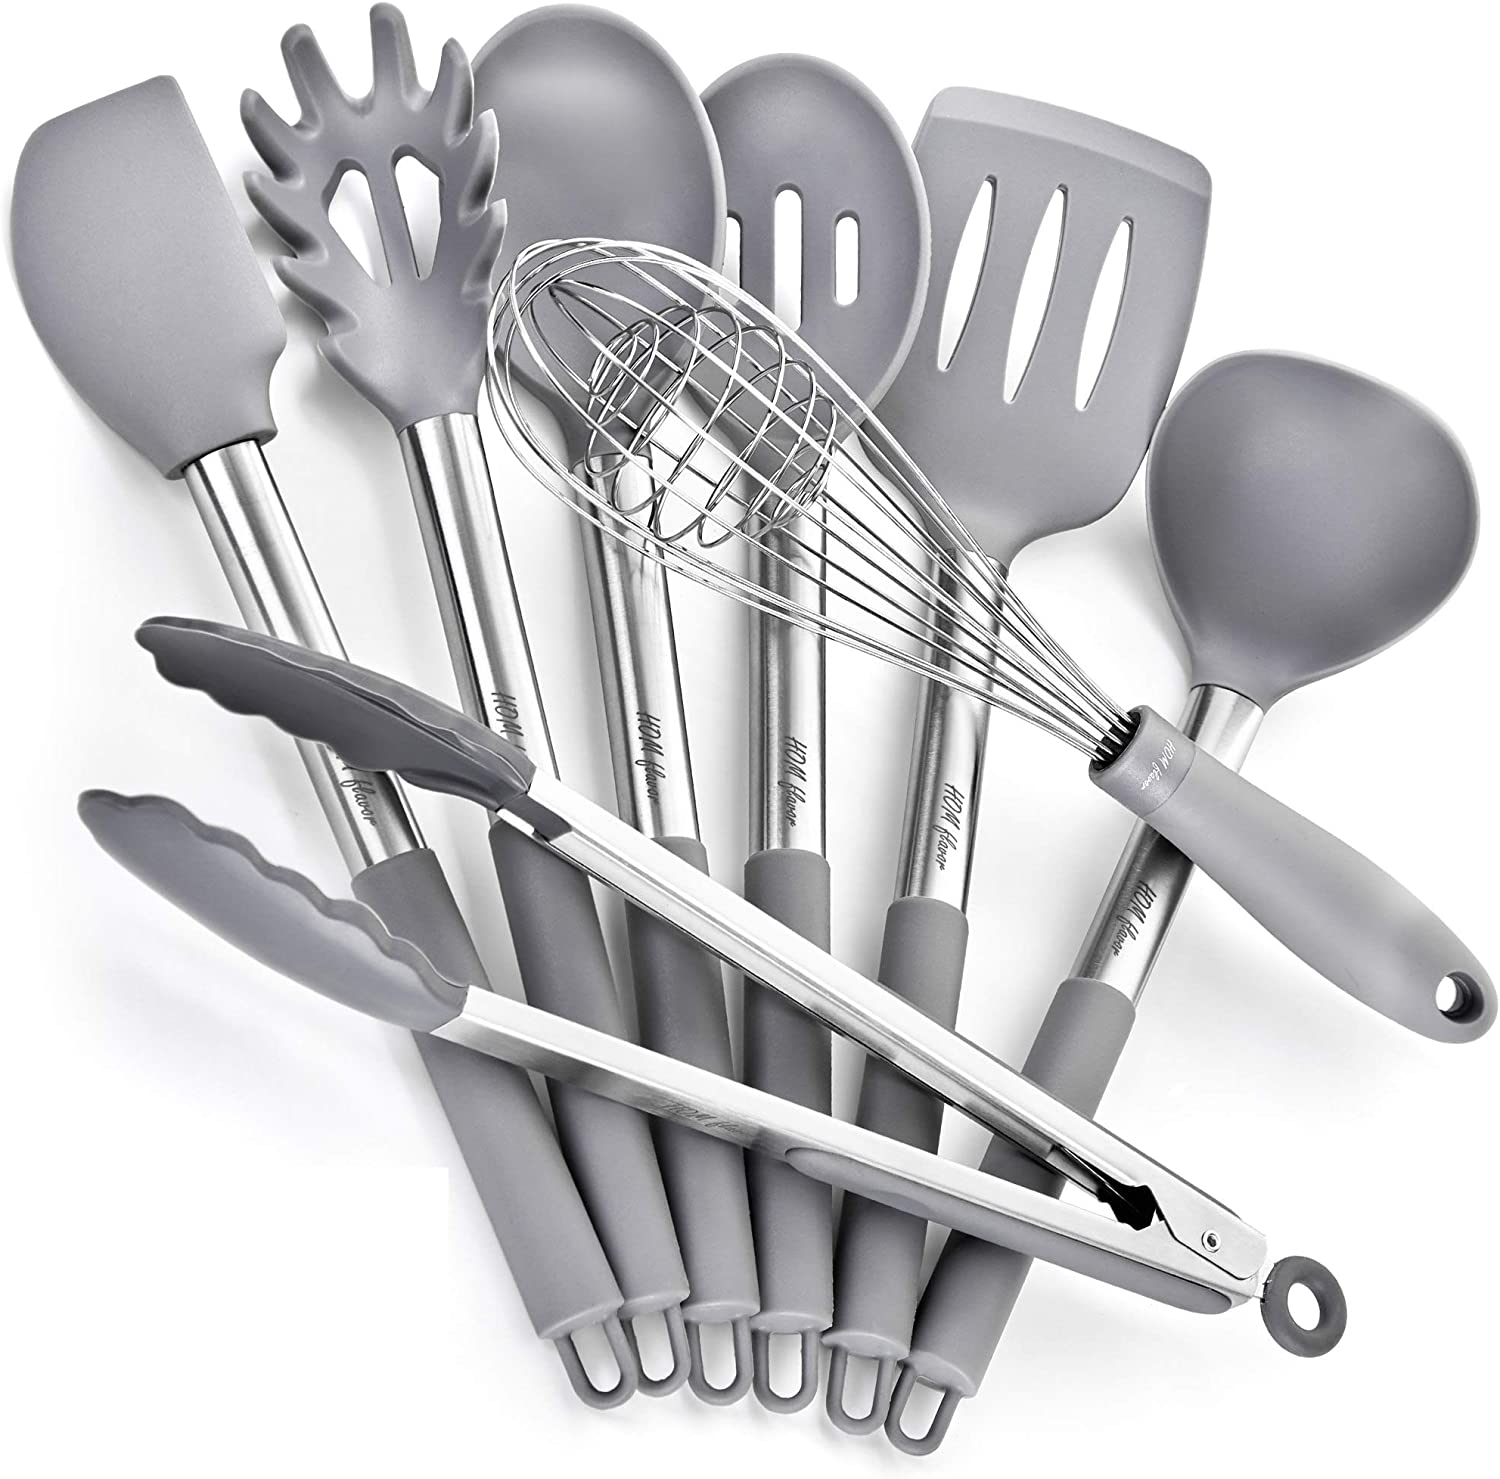 8x Silicone Cooking Utensils Kitchen Utensil Tools Set Non-Stick Stainless Steel